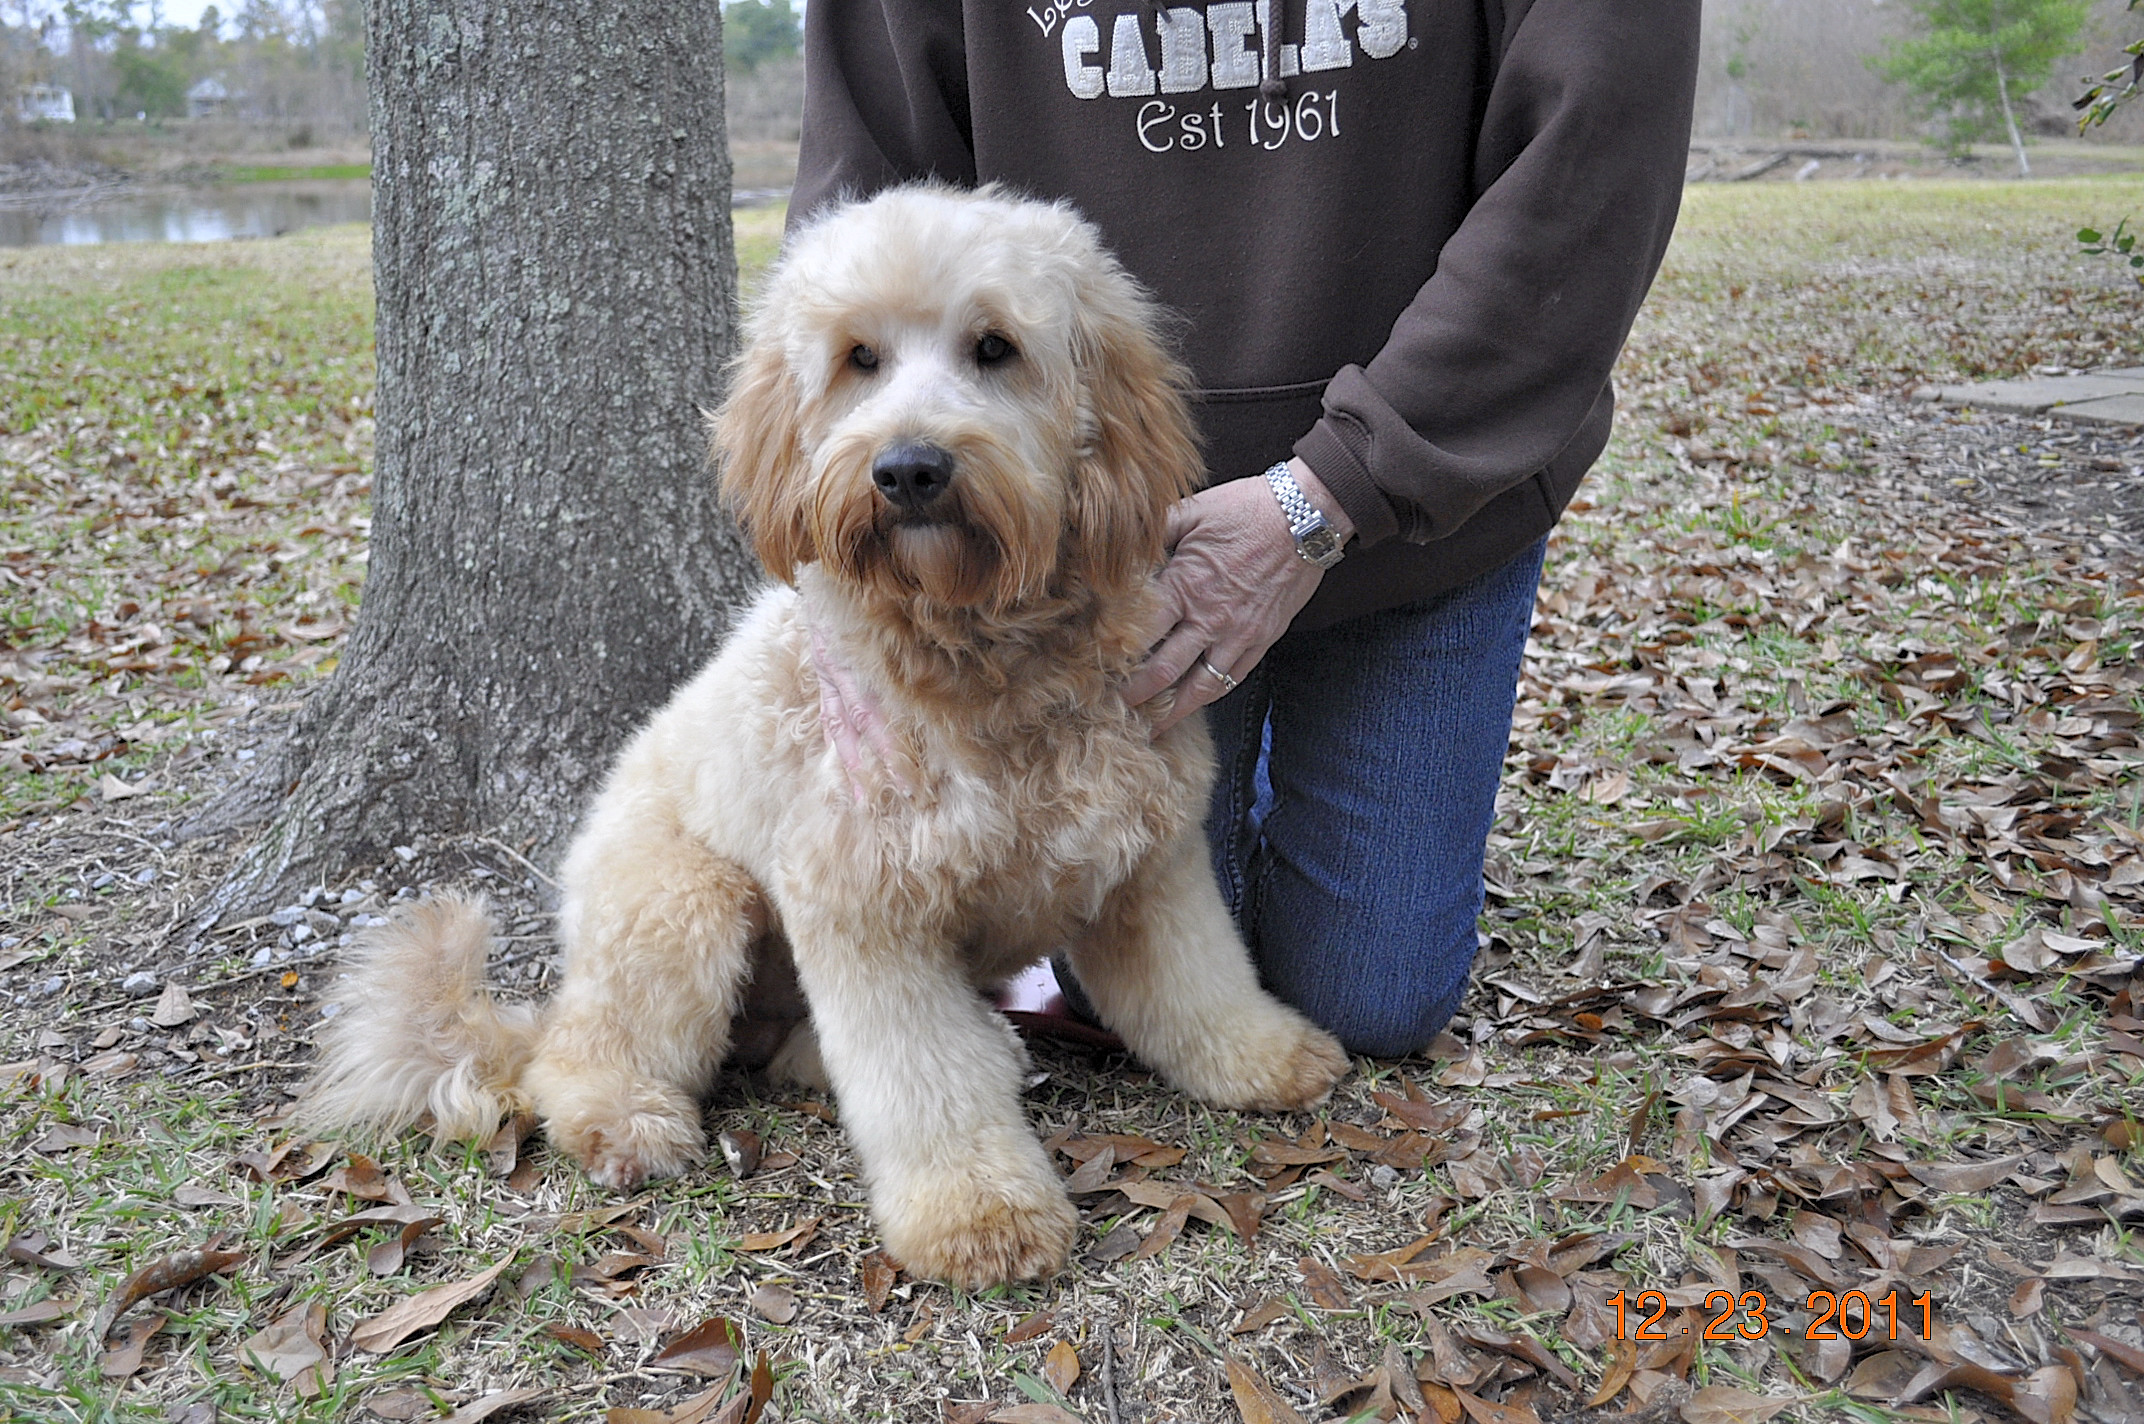 JUST LABS KENNELS - Home of Labs and Labradoodles of